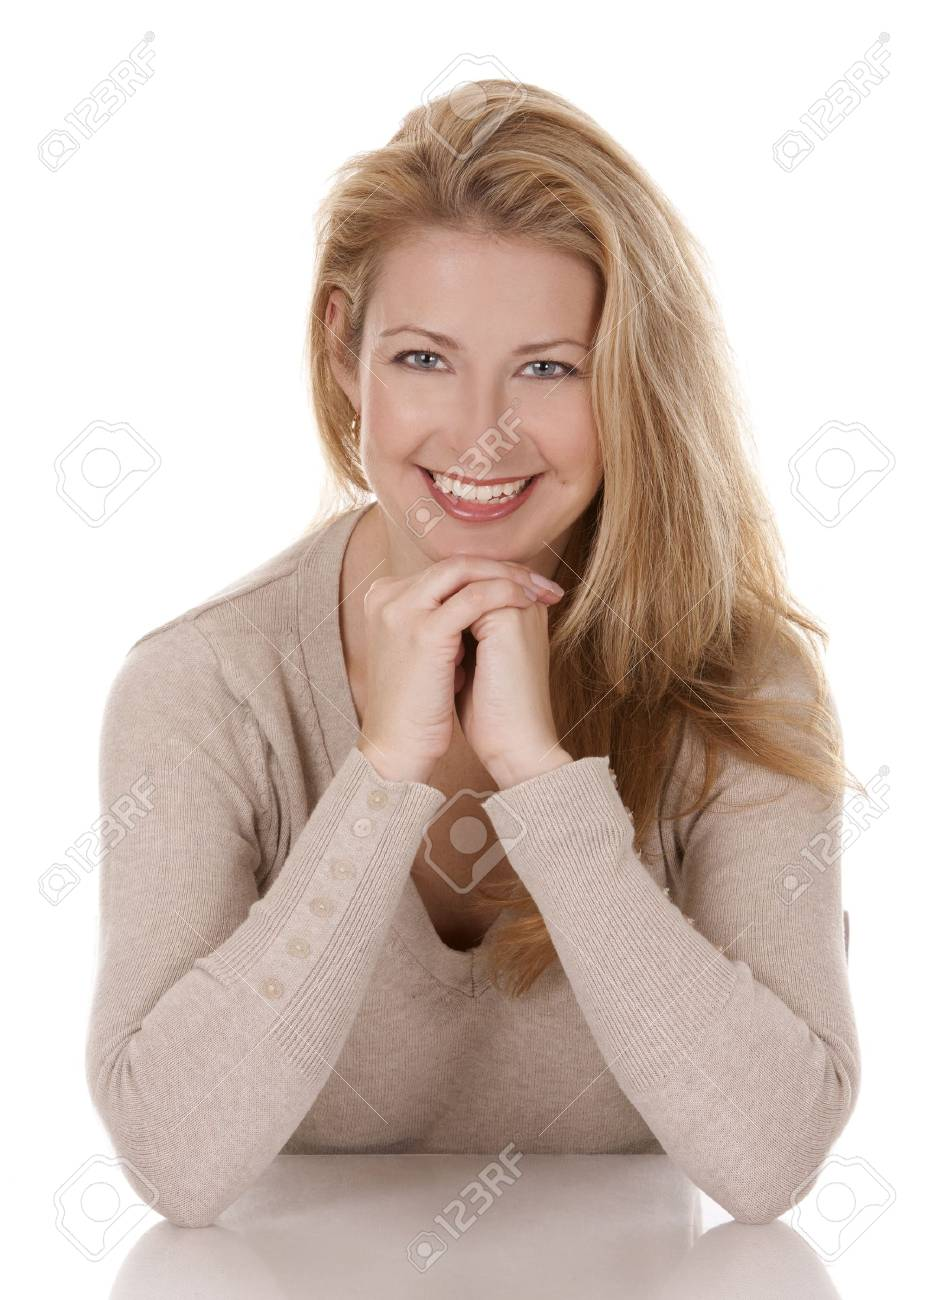 pretty blond woman wearing beige top sitting on white background Stock Photo - 15921171